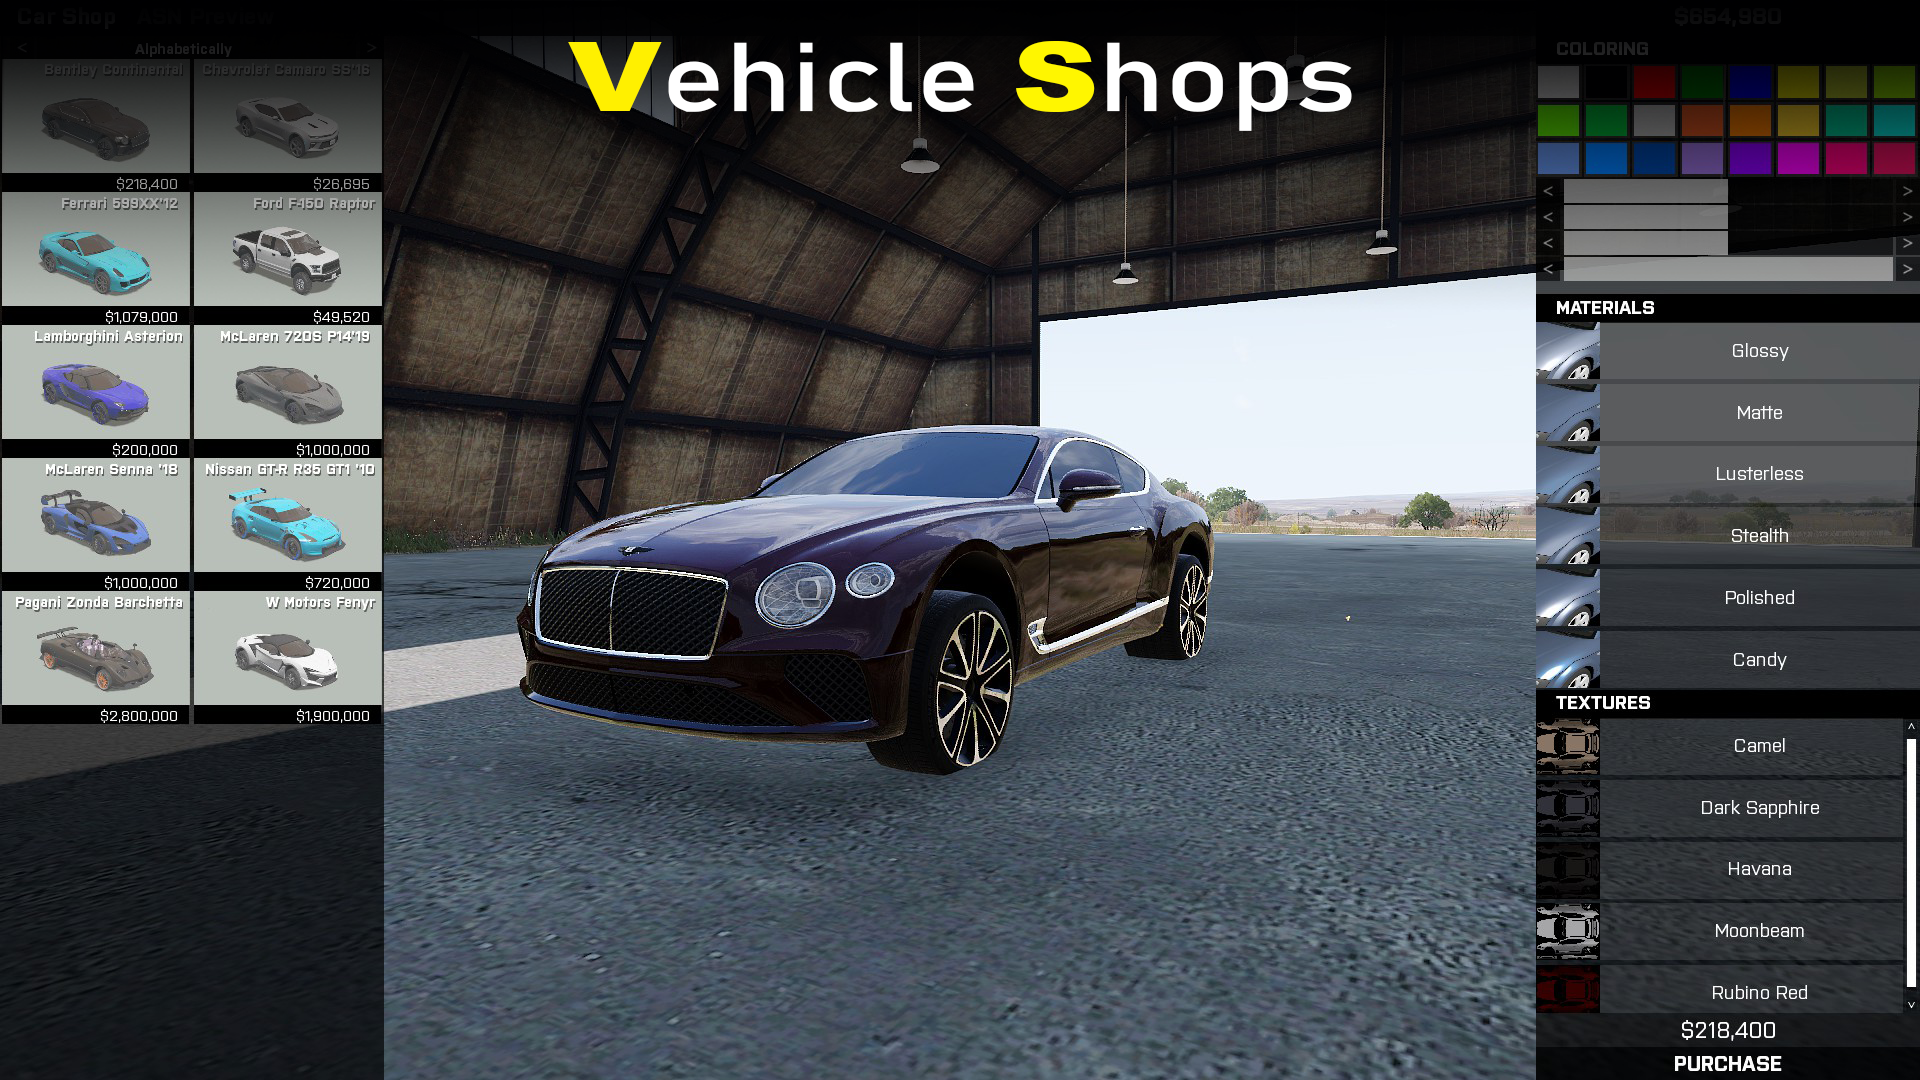 Vehicle Shops